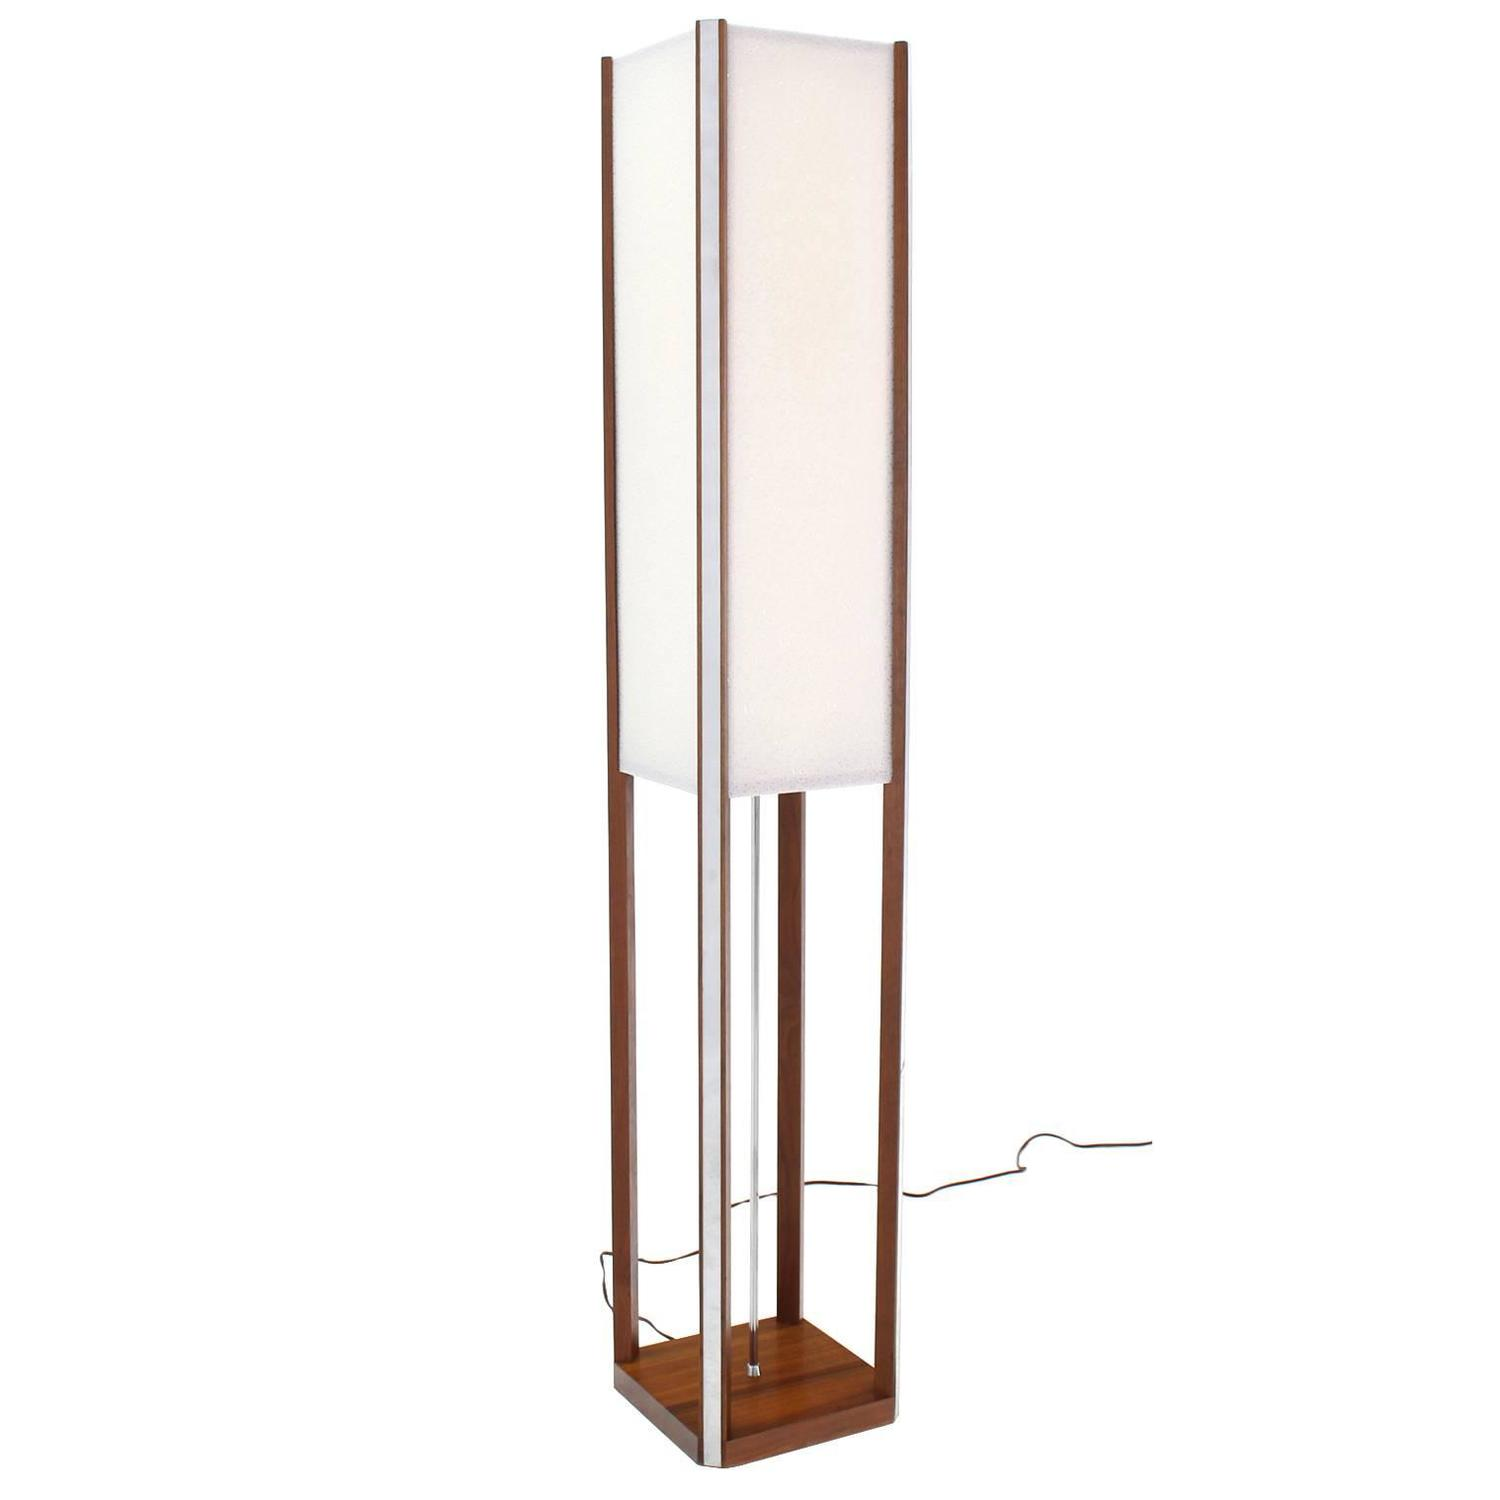 Walnut square tower shape mid century modern floor lamp for Modern tower floor lamp